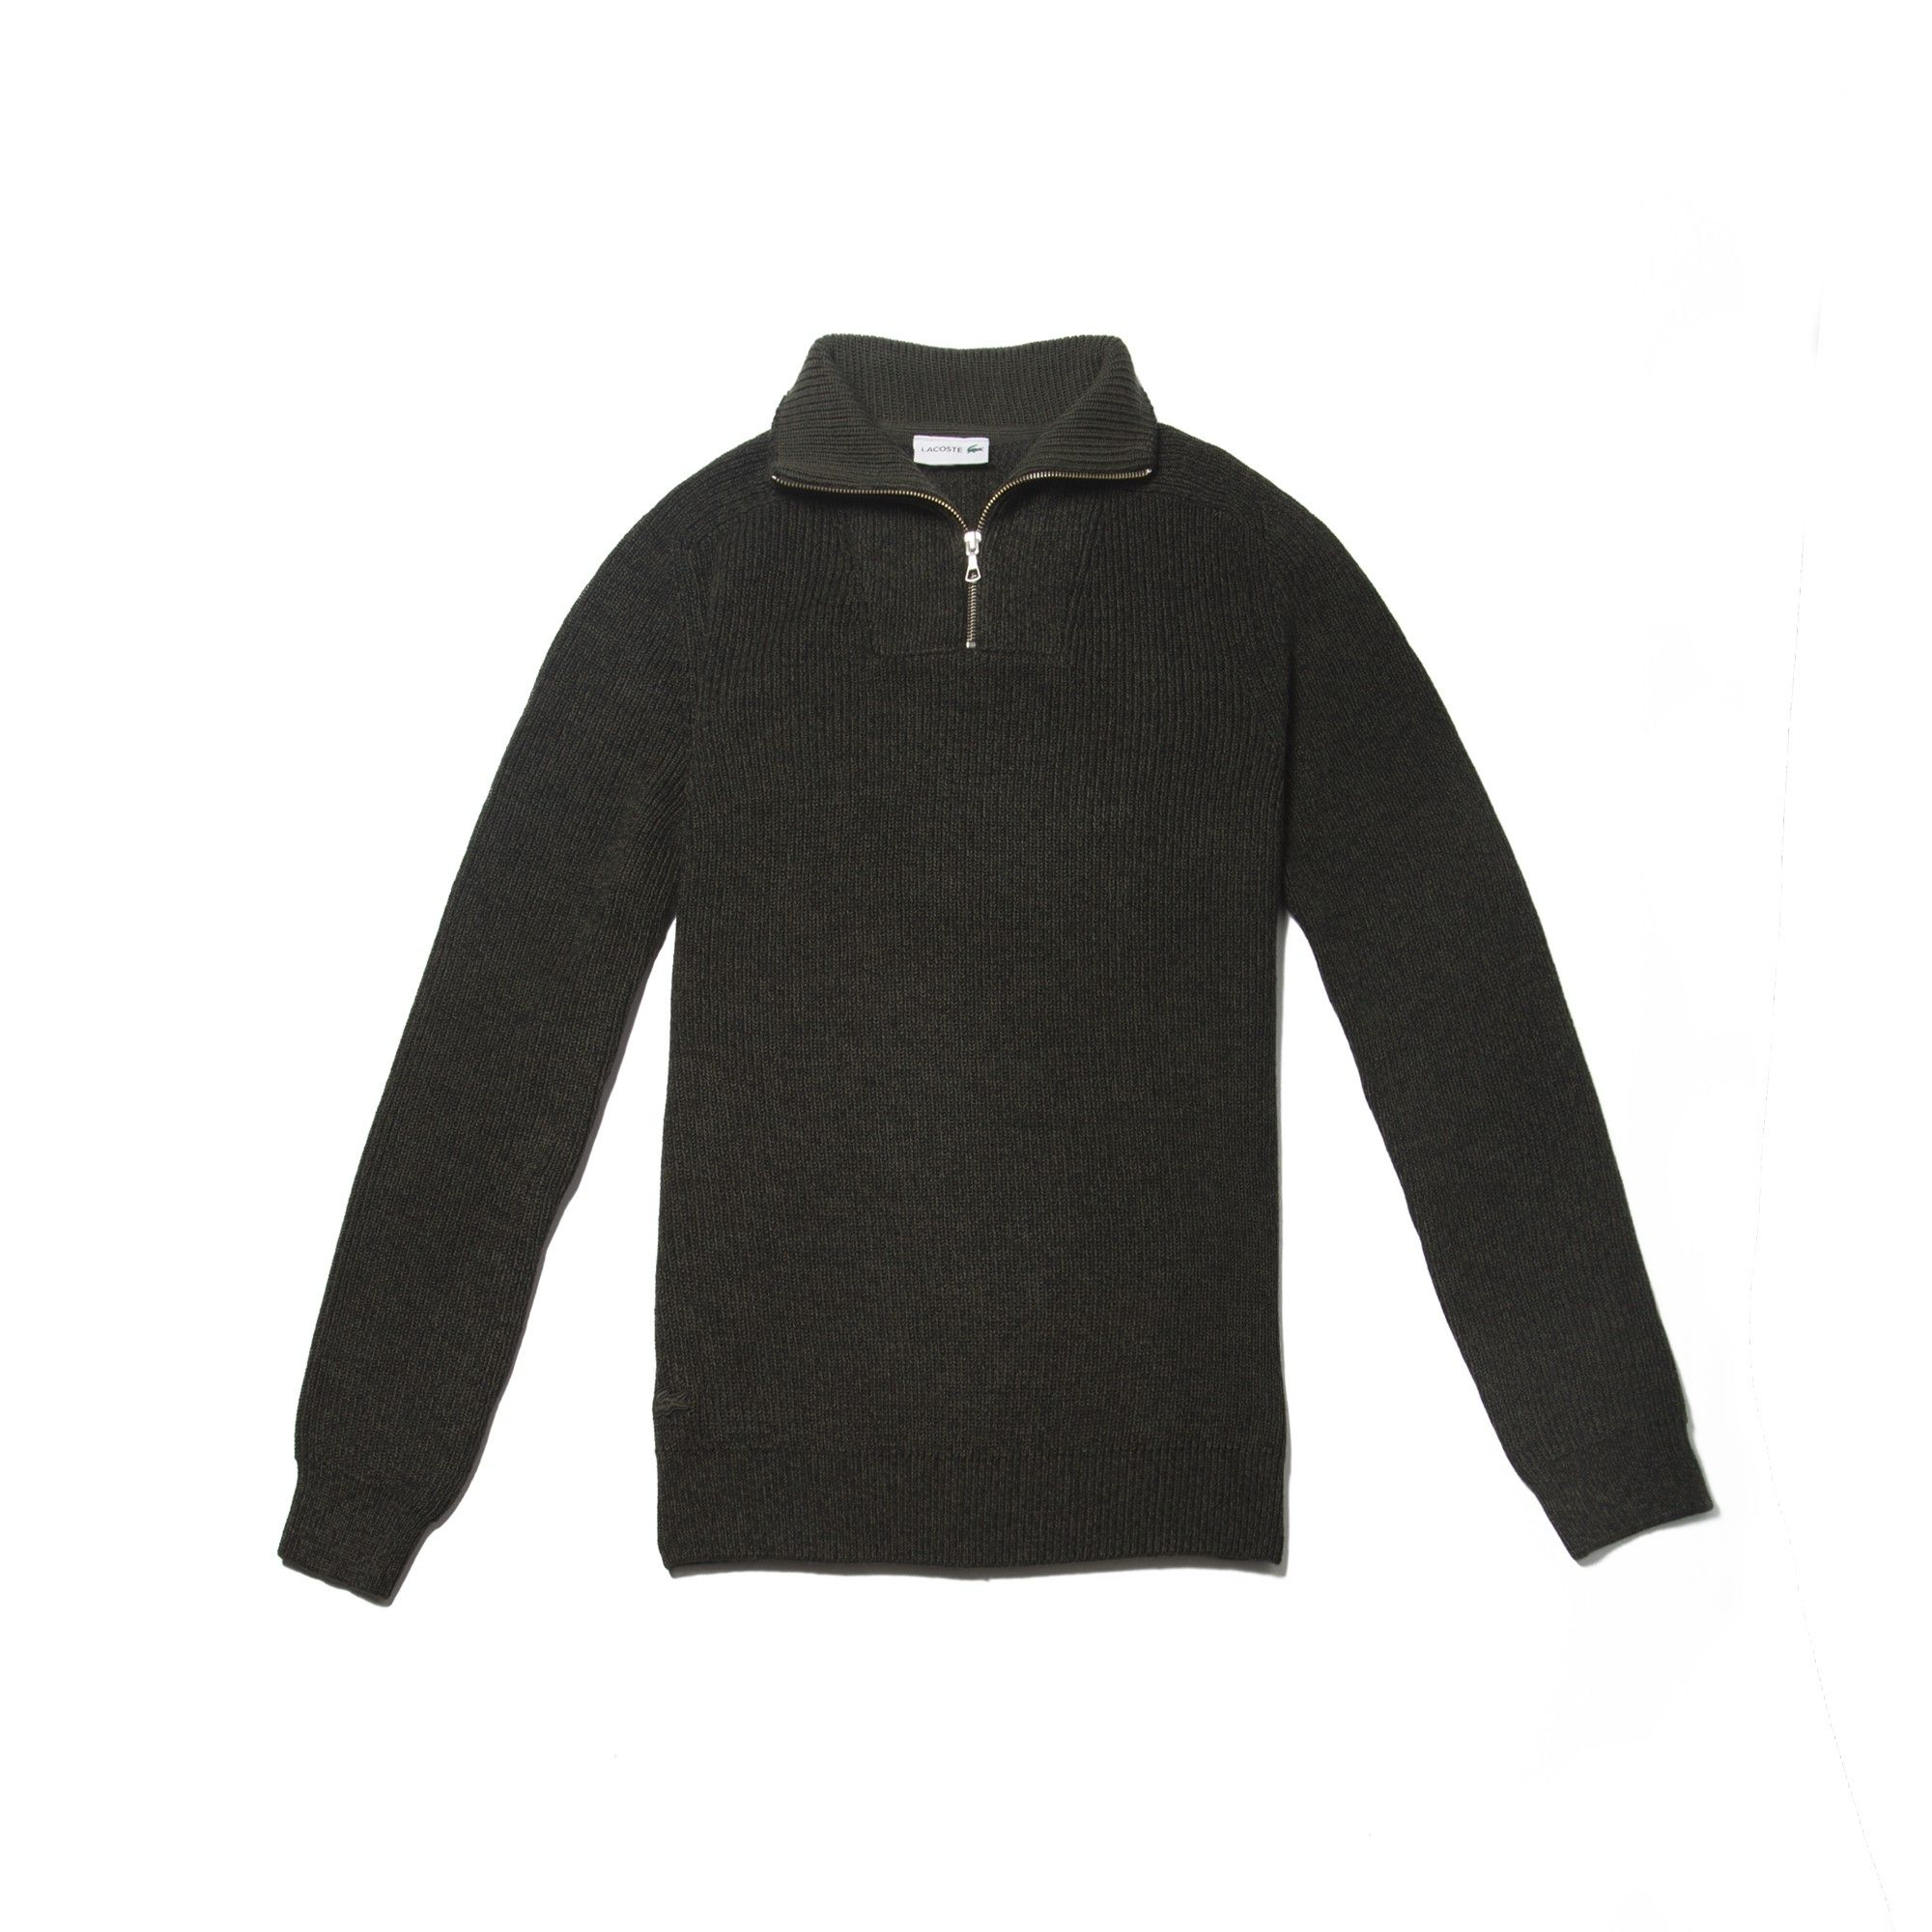 8904d8feea LACOSTE Men's Zippered Stand-Up Collar Ribbed Wool Sweater - SHERWOOD  MOULINE/SHERWOODSHERWOOD MOULINE/SHERW. #lacoste #cloth #